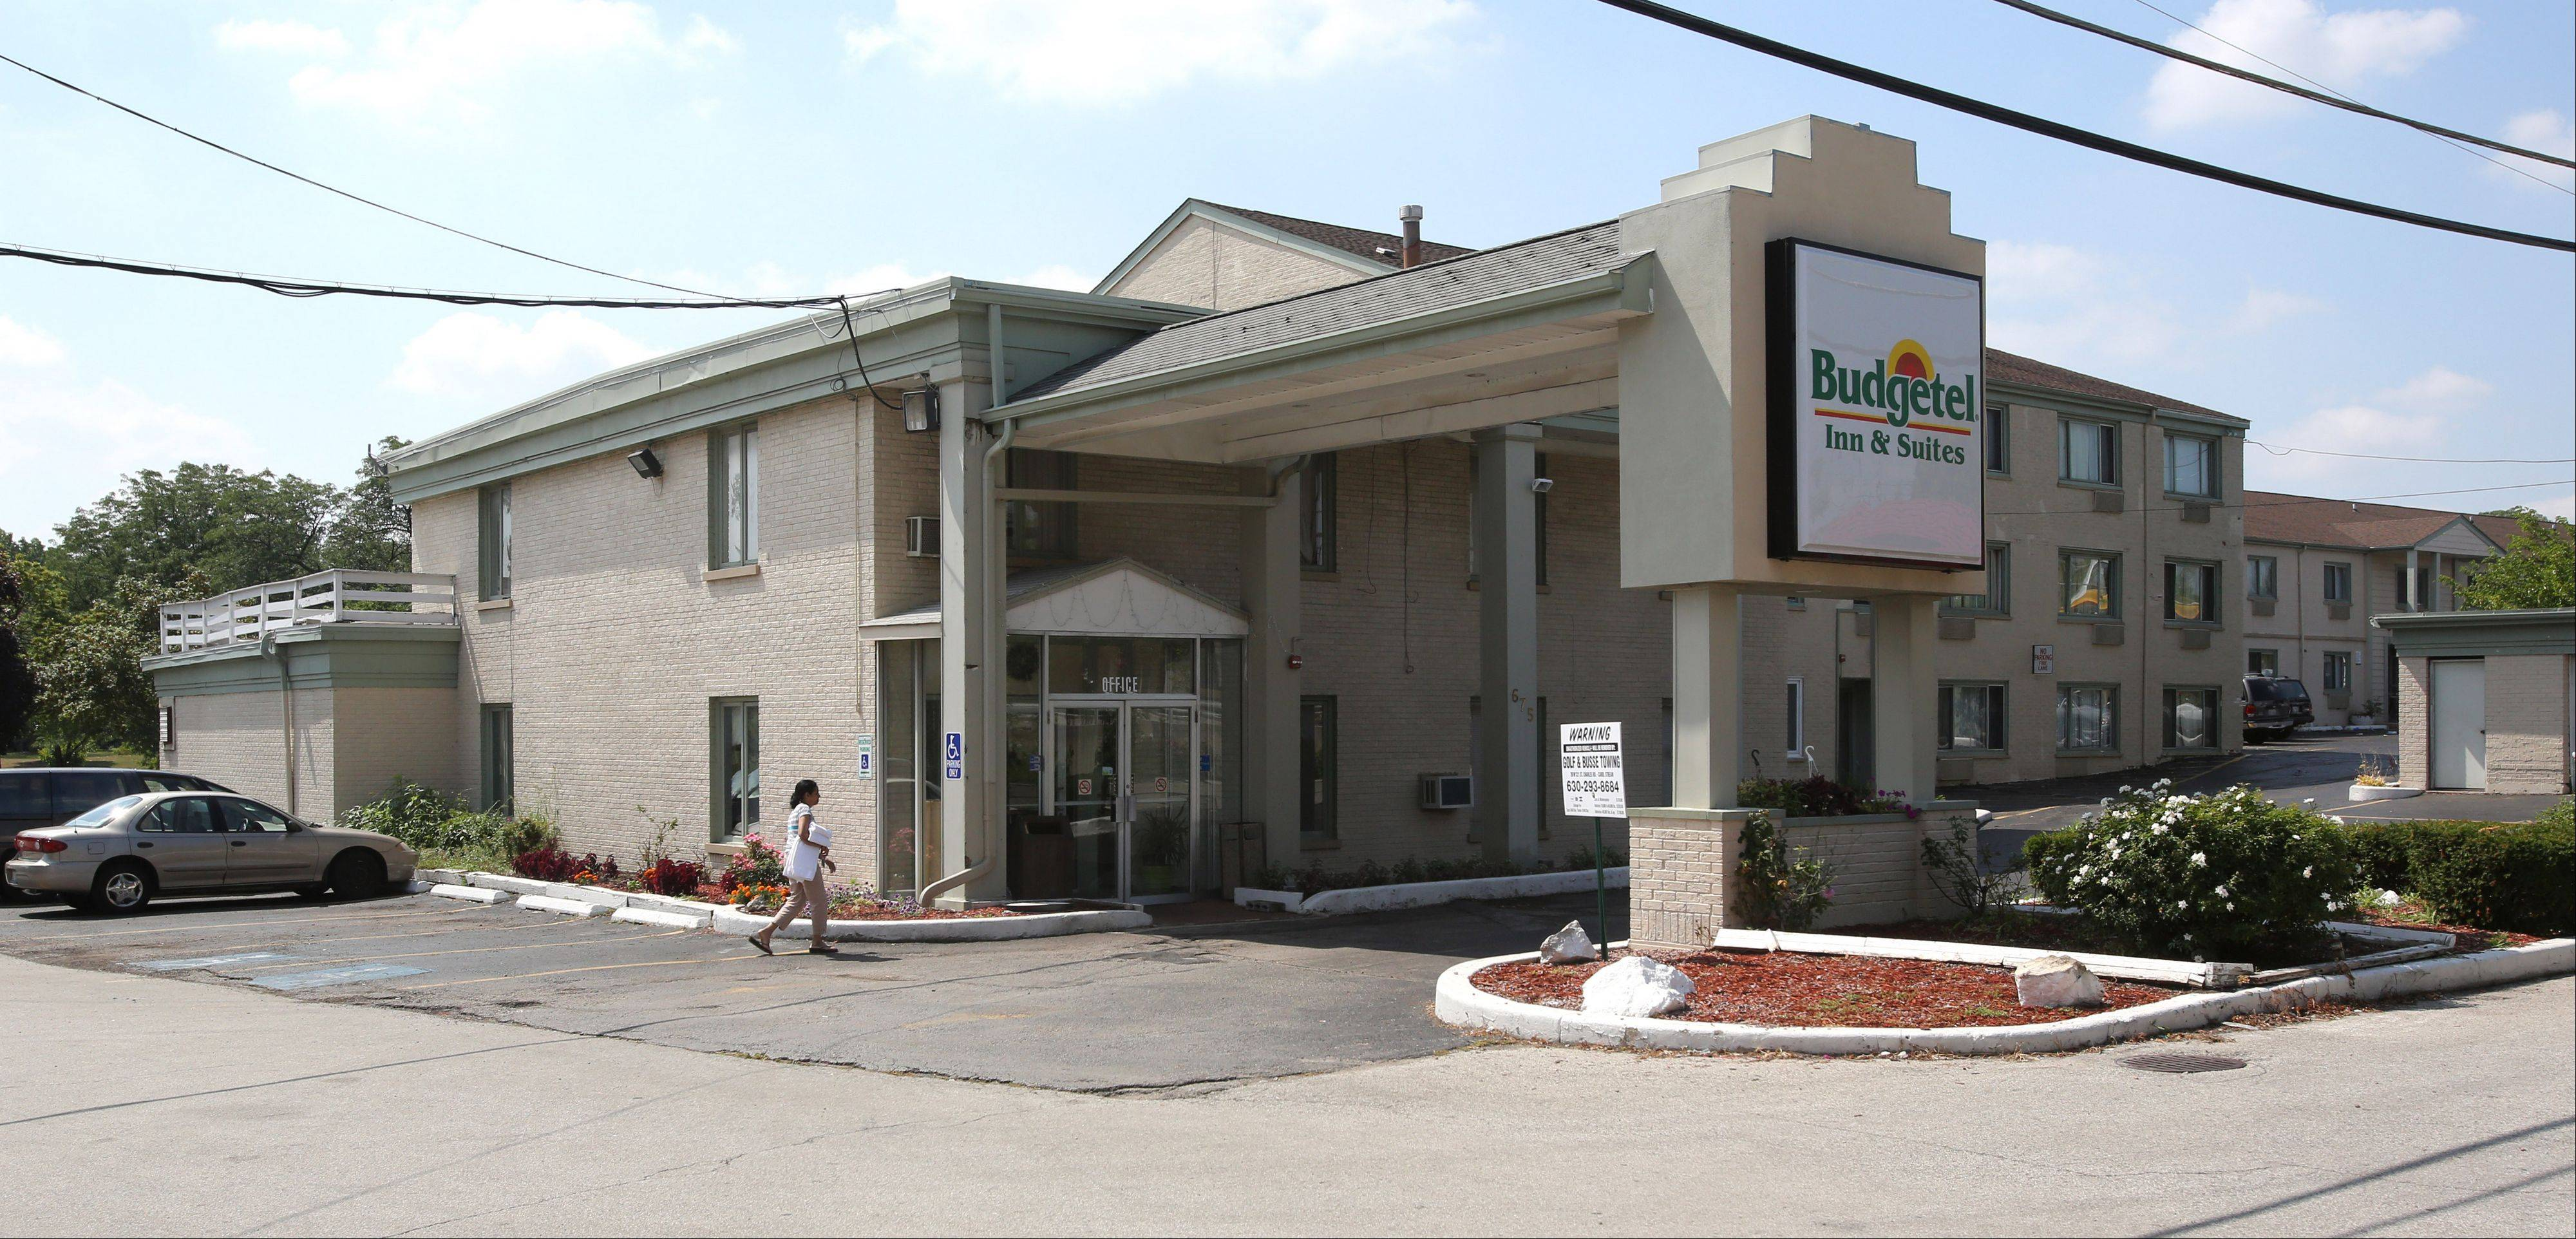 Glen Ellyn considers hotel licensing rules